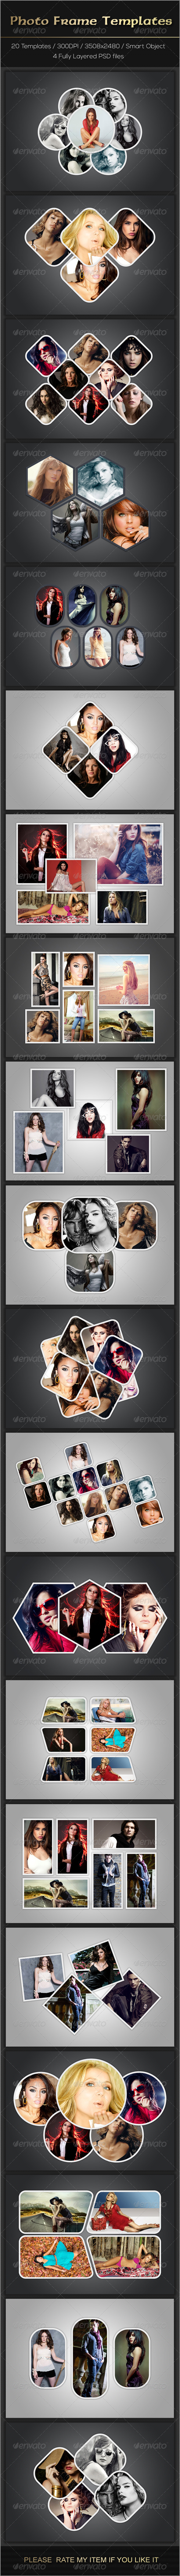 GraphicRiver Photo Frame Templates 7790361